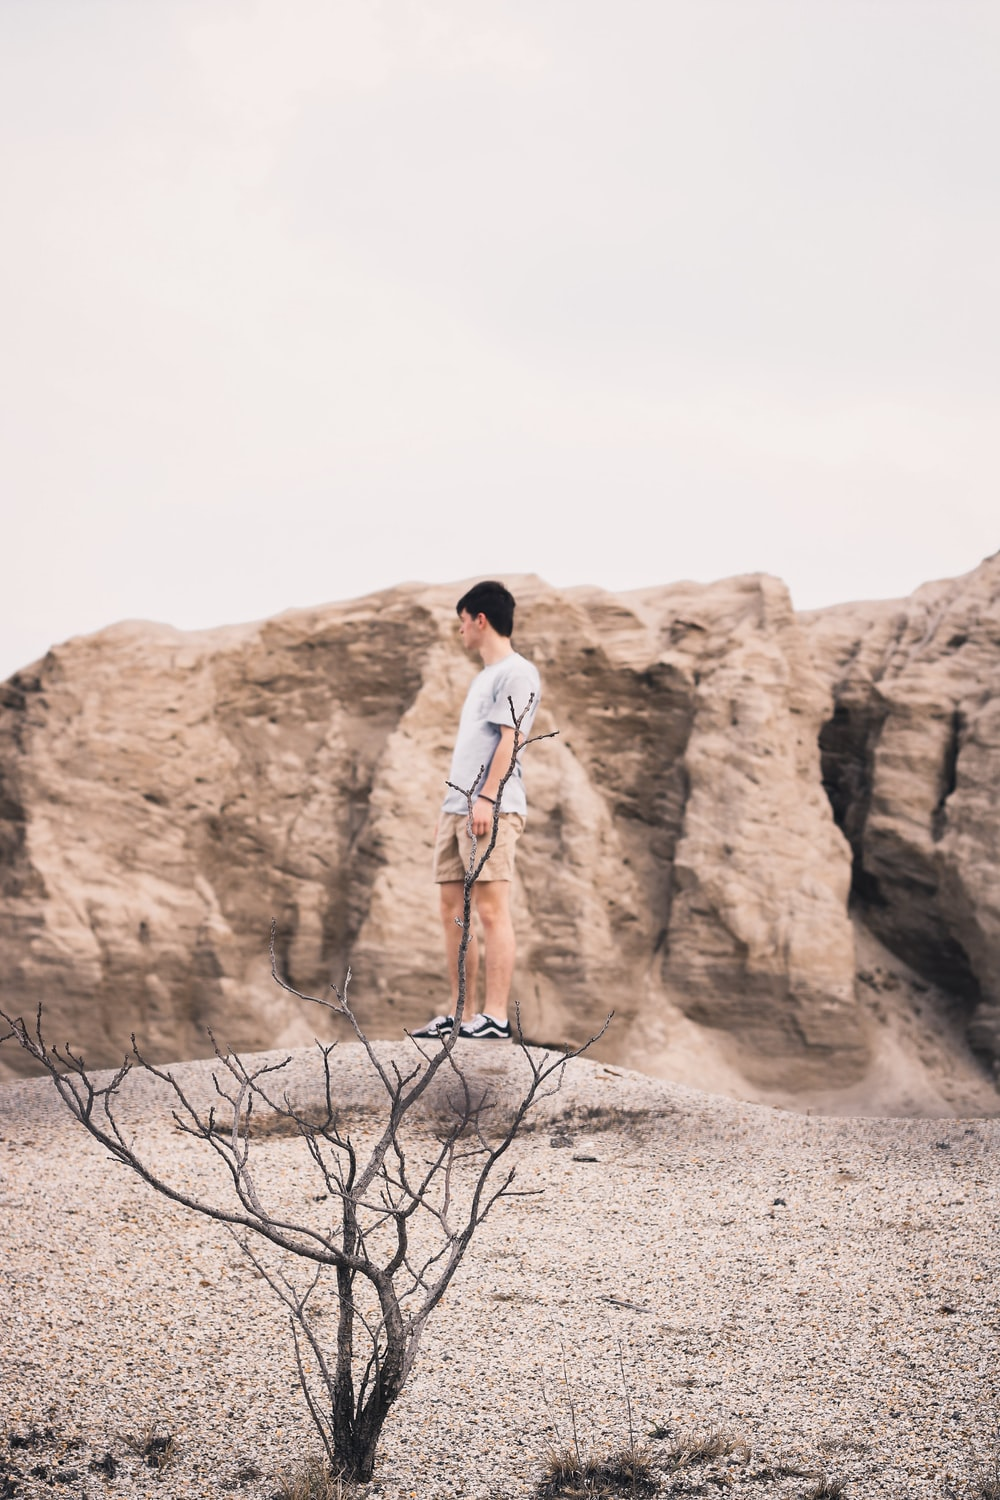 man in white t-shirt standing on brown rock formation during daytime